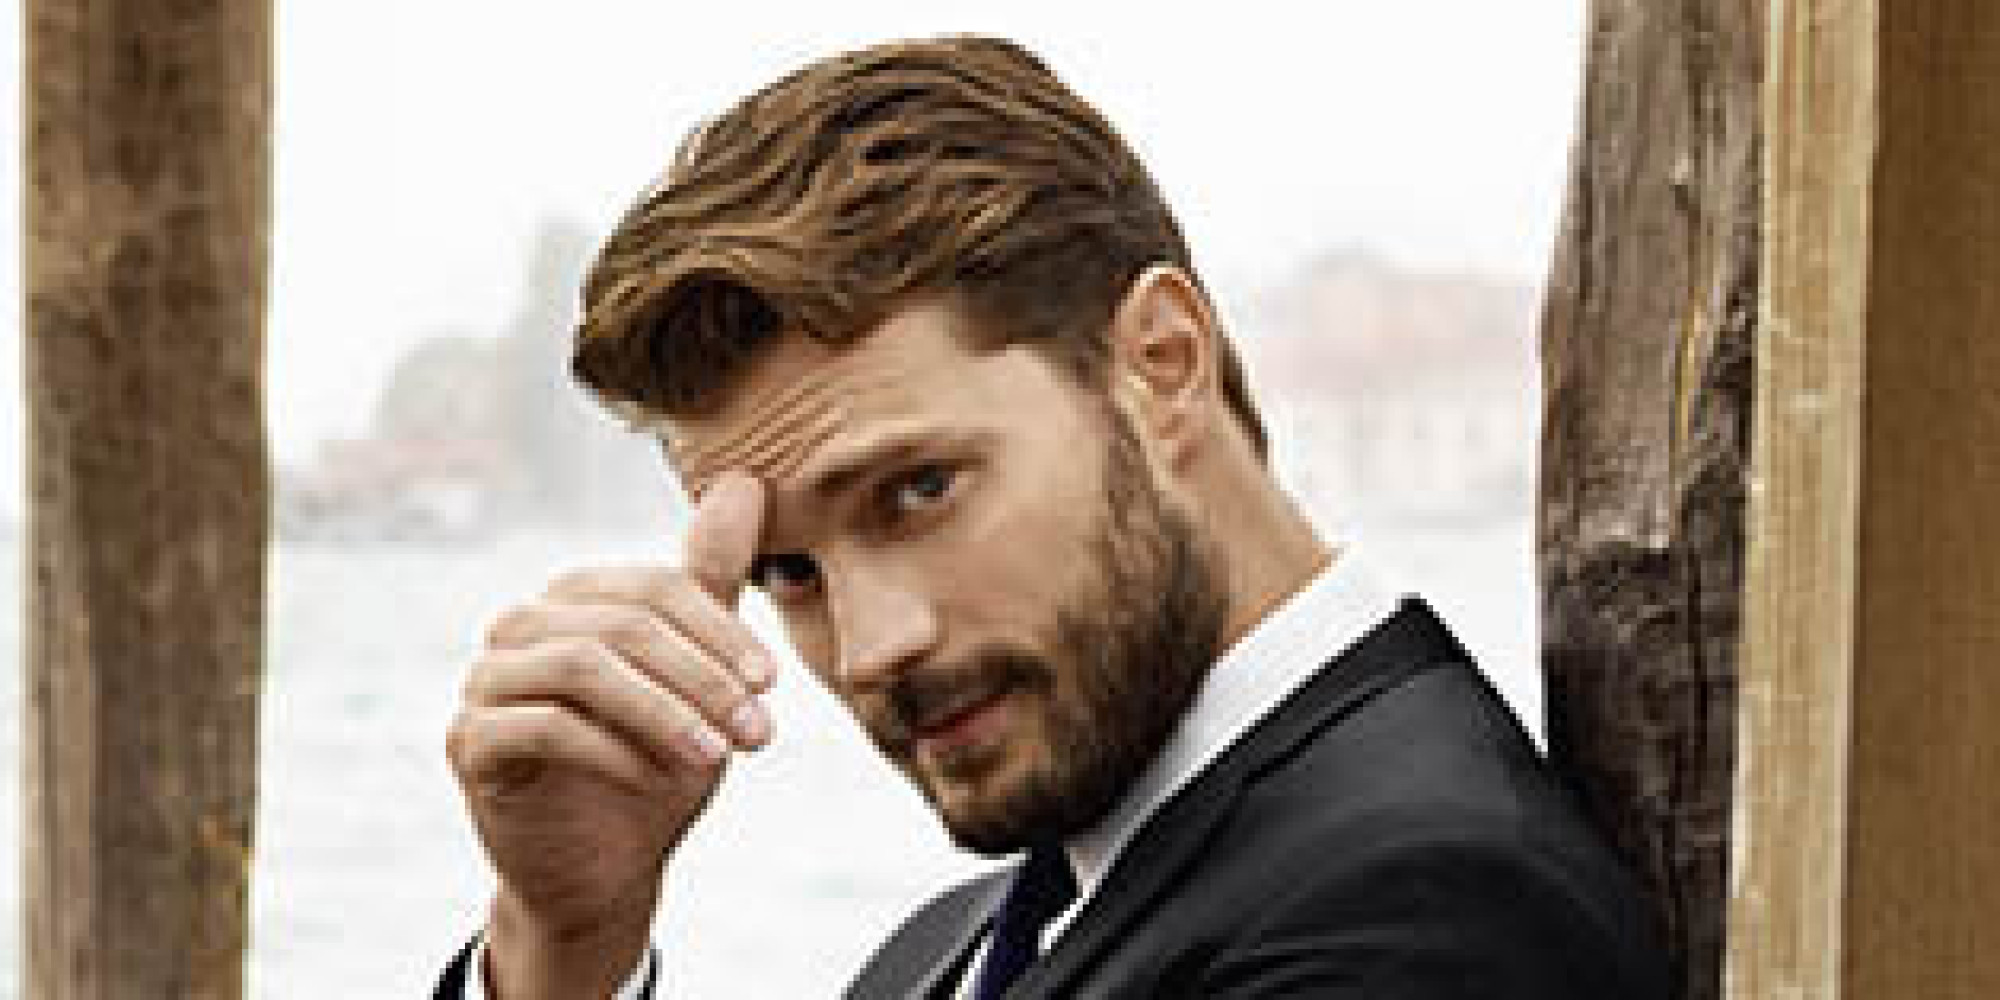 Jamie dornan poses in ads for hogan giving his best christian grey